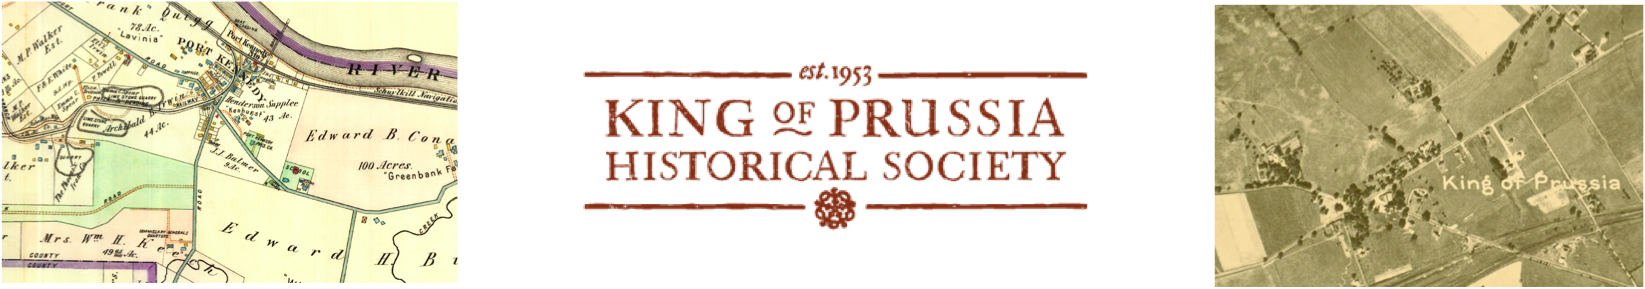 King of Prussia Historical Society